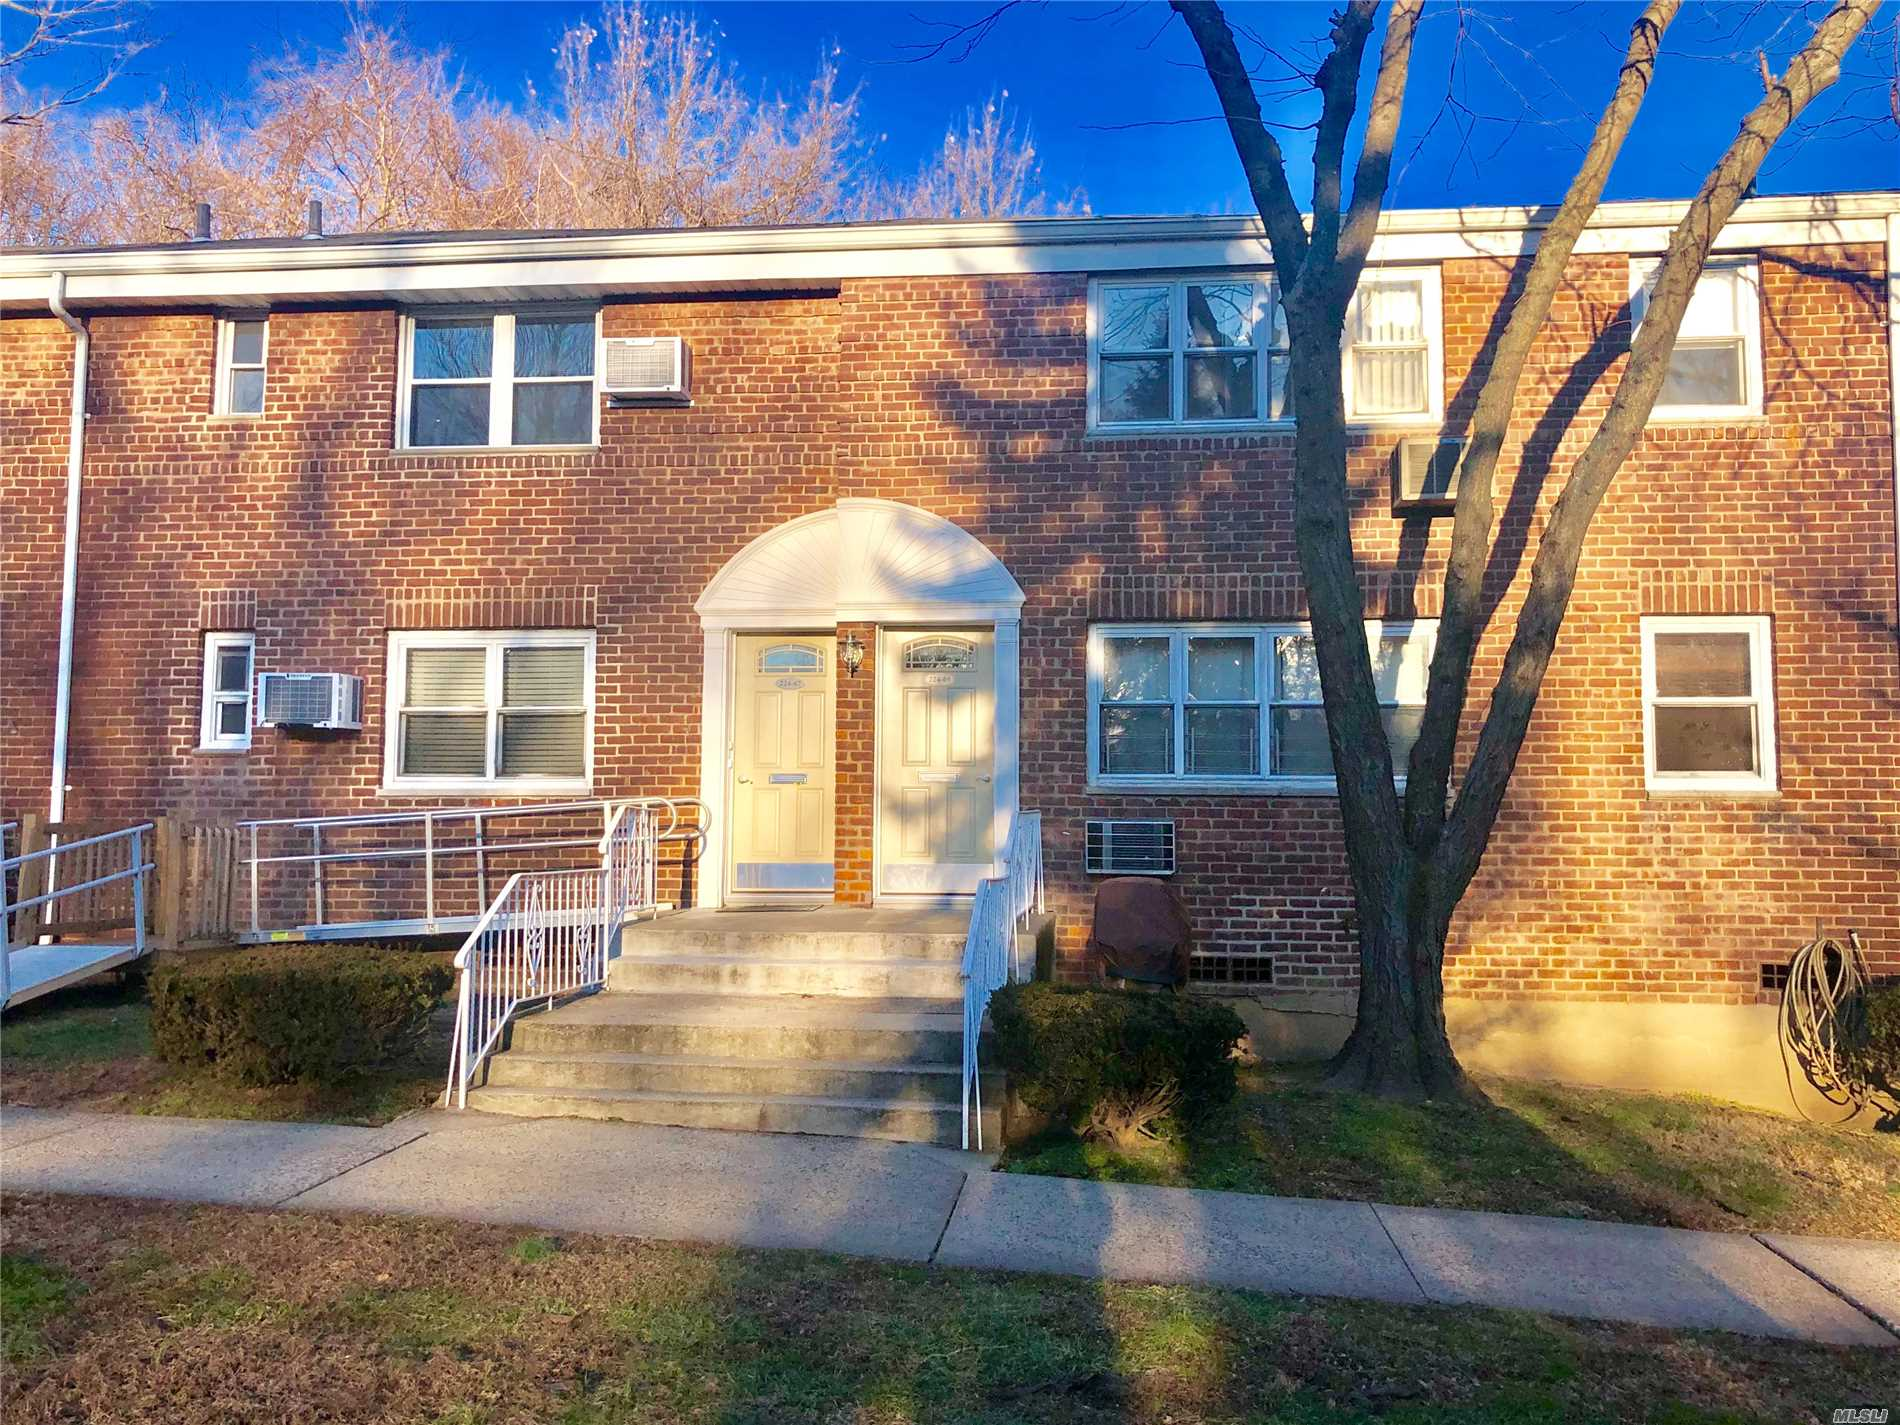 Newly Listed In Alley Pond, Sun Drenched Unit Sits In Desirable Courtyard, Kitchen Features Dishwasher Plus Dining Area, Cozy Living Room, Immaculate Bathroom, Spacious Bedroom, And Pull Down Attic For Generous Storage. Near Schools, Shops, & Transportation. Bring Your Pet! Qm5 & Qm8